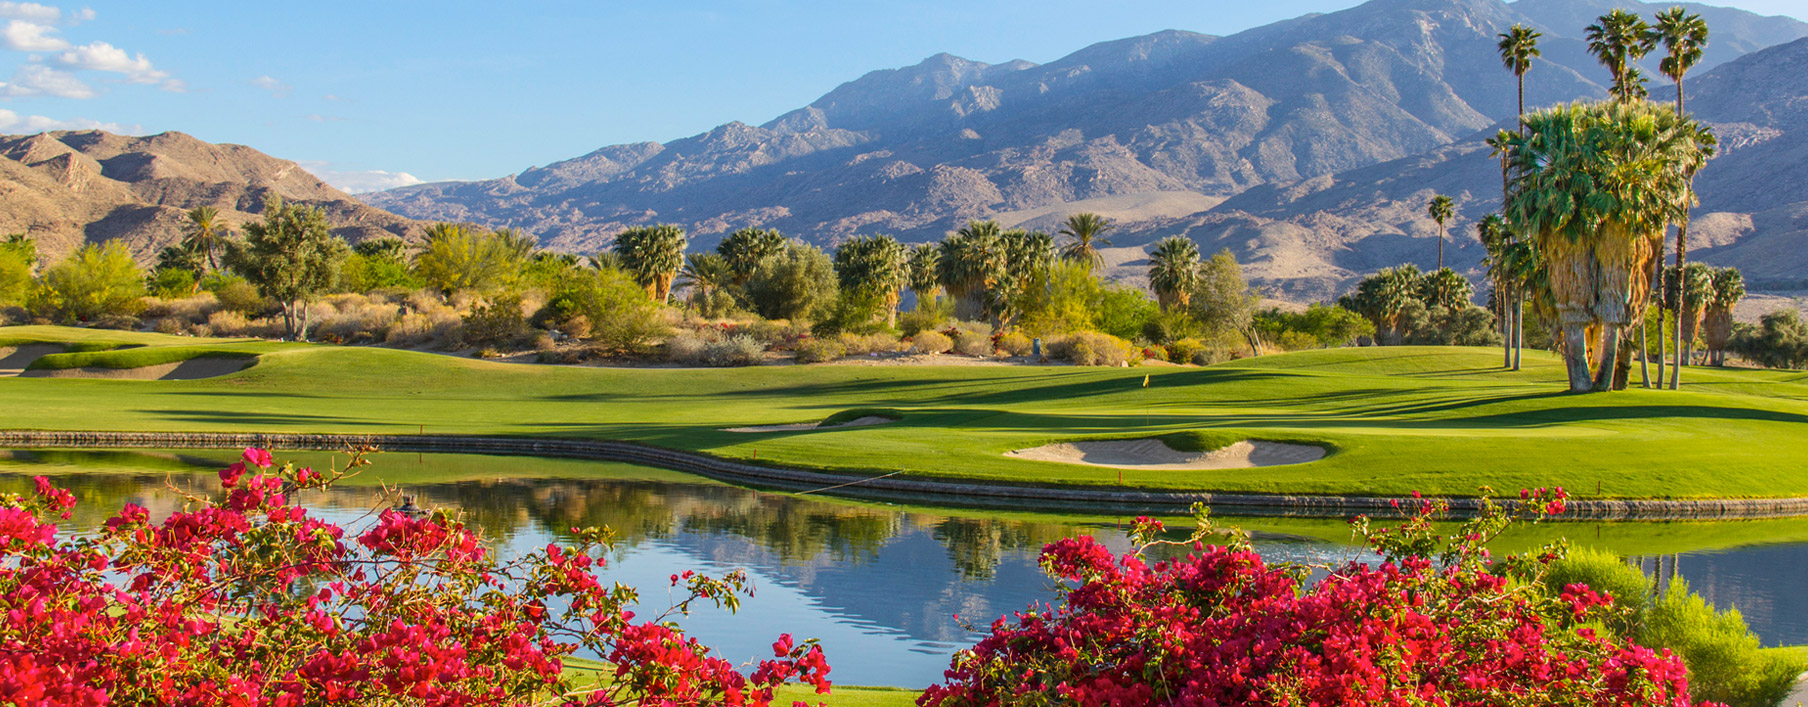 palm springs tourism Top places to visit in palm springs, california: see tripadvisor's 26,717 traveller reviews and photos of palm springs attractions.